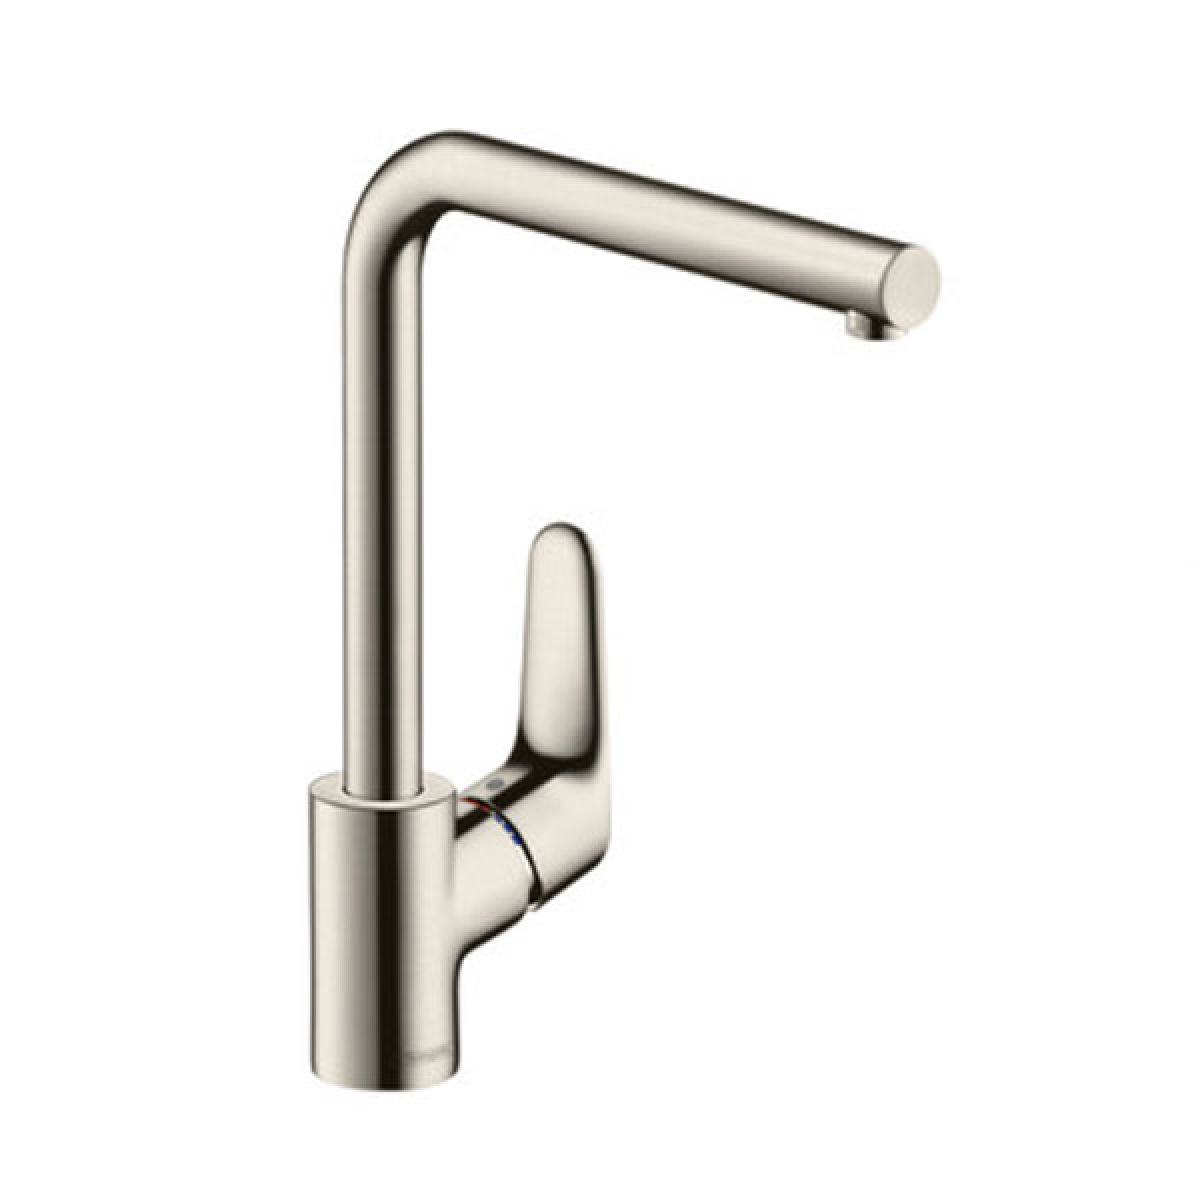 hansgrohe 280 focus kitchen mixer tap uk bathrooms. Black Bedroom Furniture Sets. Home Design Ideas